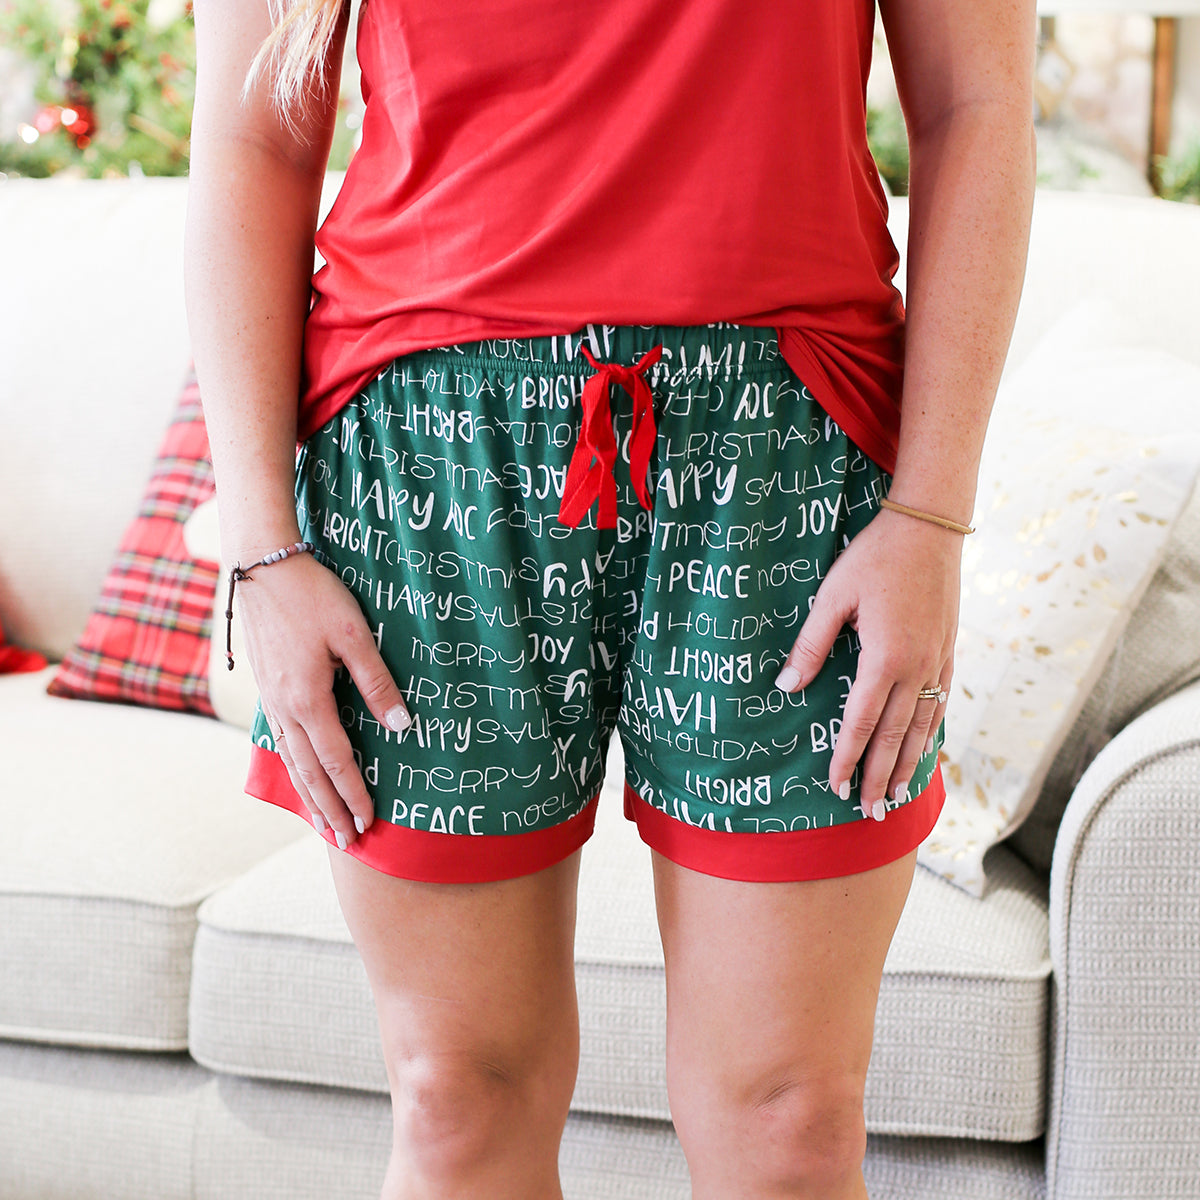 The perfect sleep shorts to get in the holiday spirit! These festive plaid sleep shorts are perfect for watching holiday movies, opening gifts on Christmas morning and so much more! Material: 95% Polyester, 5% Spandex Runs true to size, model is wearing a size